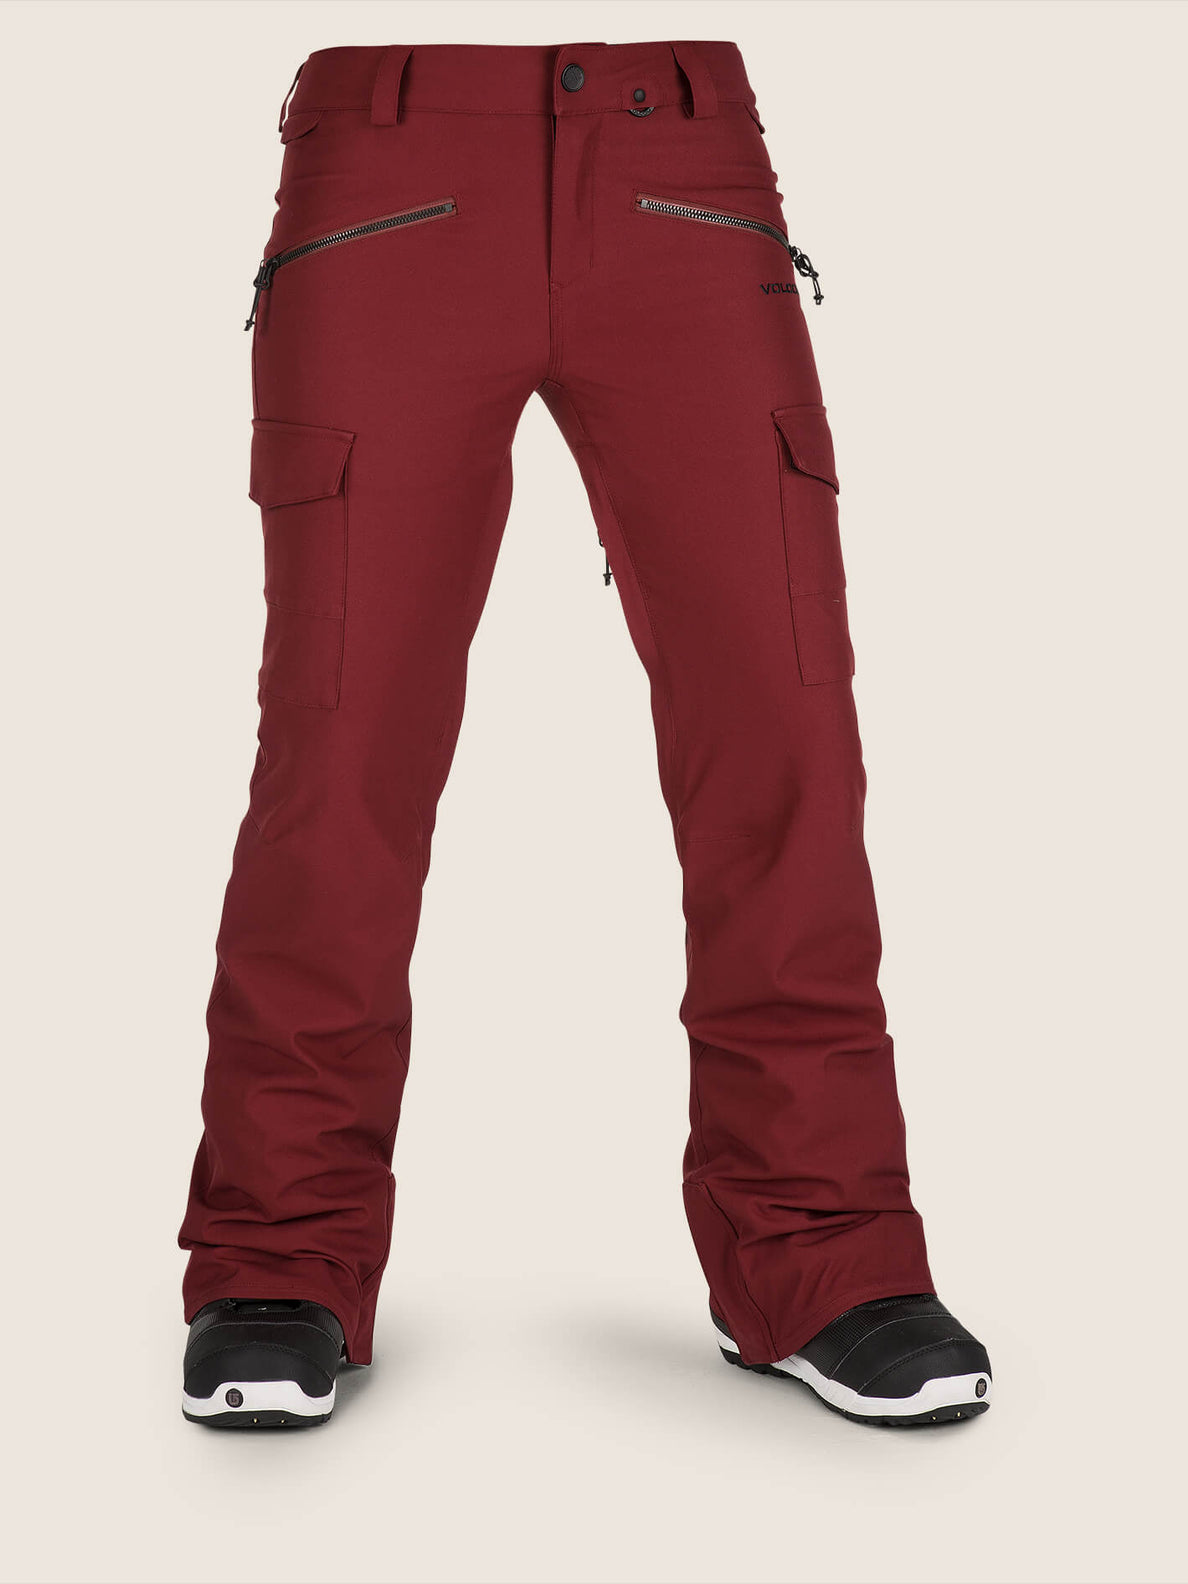 Mira Pant In Burnt Red, Front View